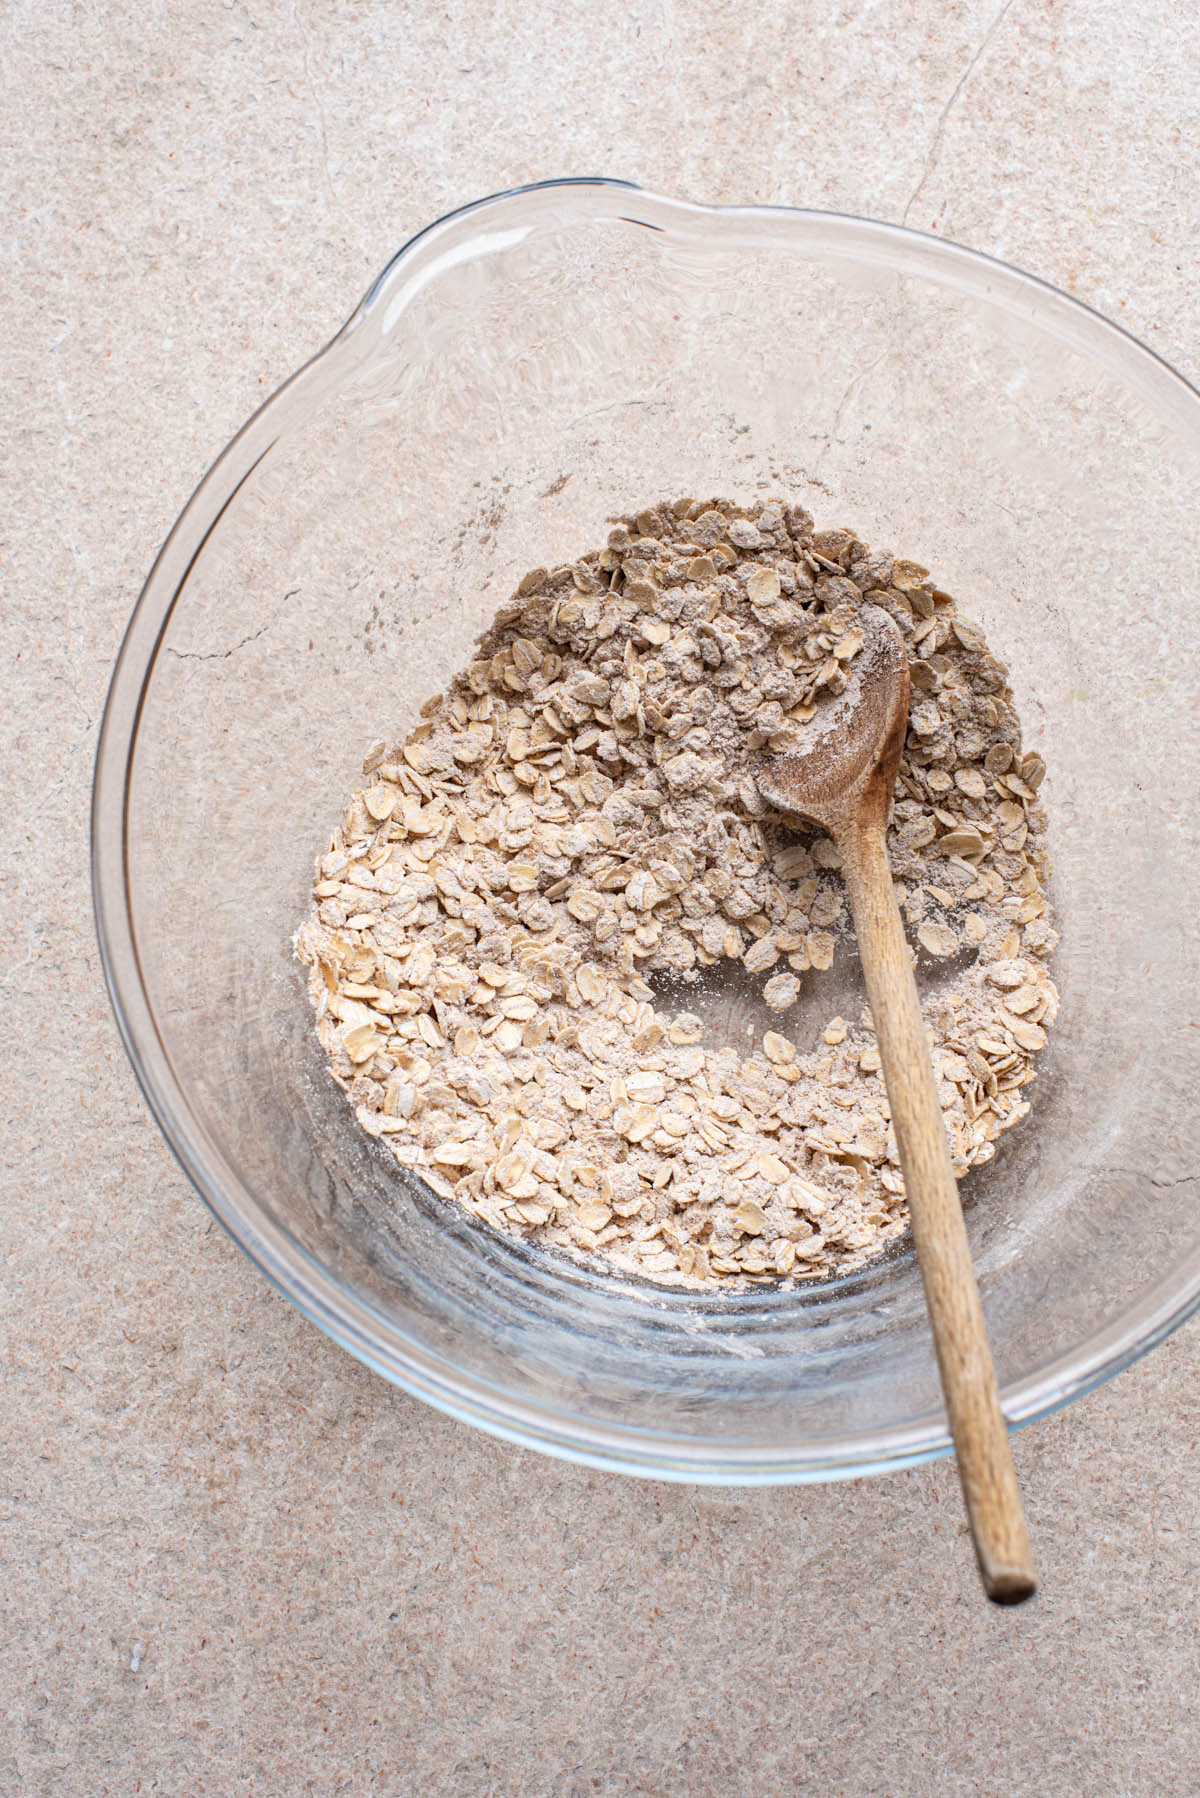 Oatmeal cookie dry mix in a large glass bowl.